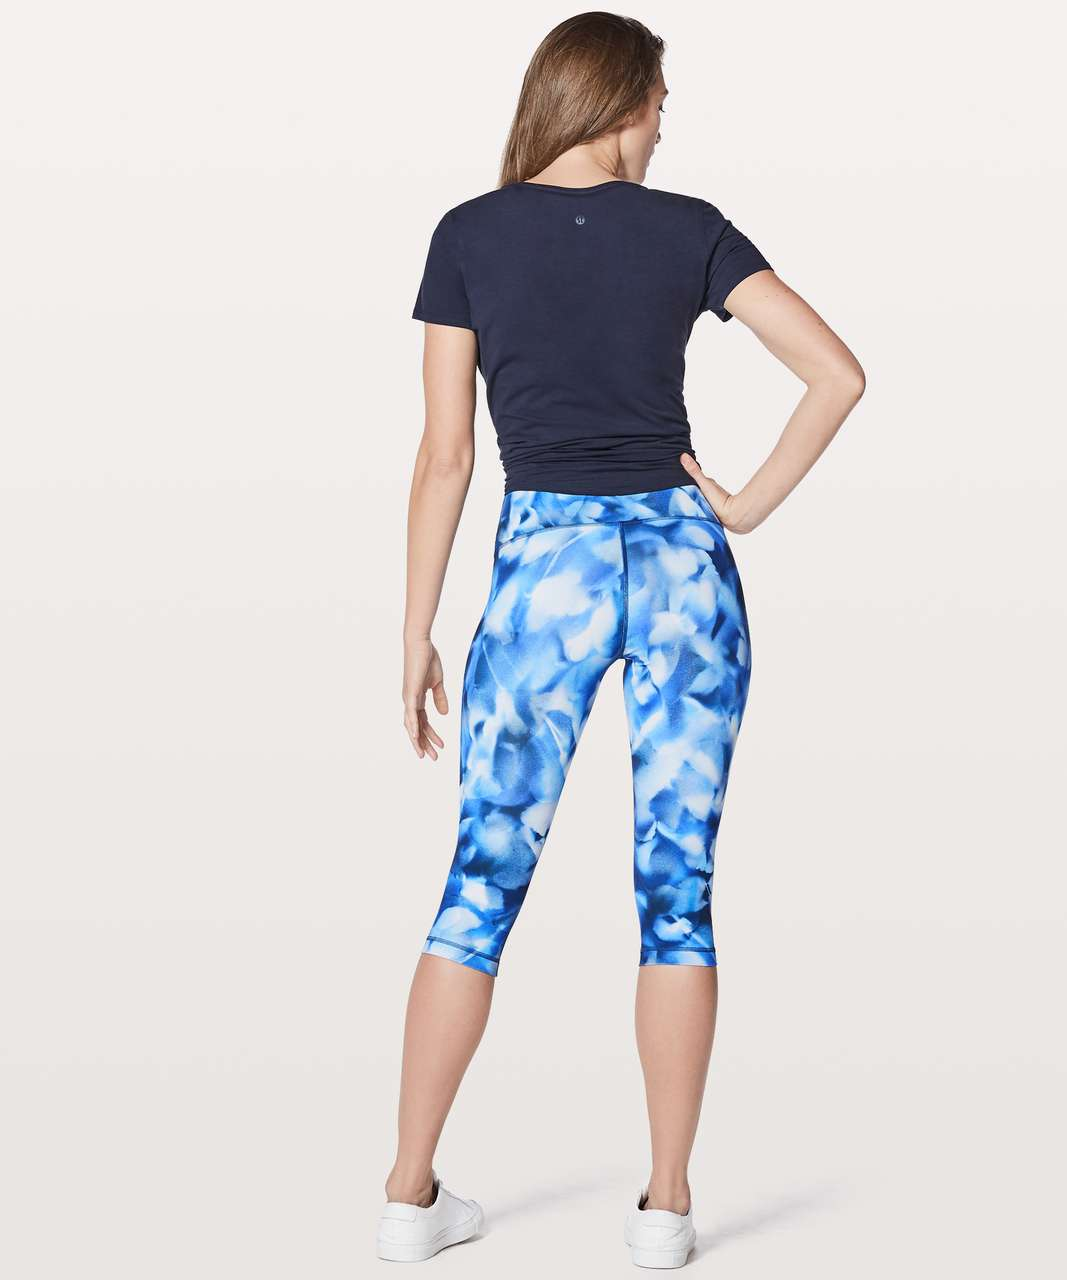 "Lululemon Wunder Under Hi-Rise 1/2 Tight *Full-On Luxtreme 17"" - Blush Blossom Alpine White Midnight Navy"